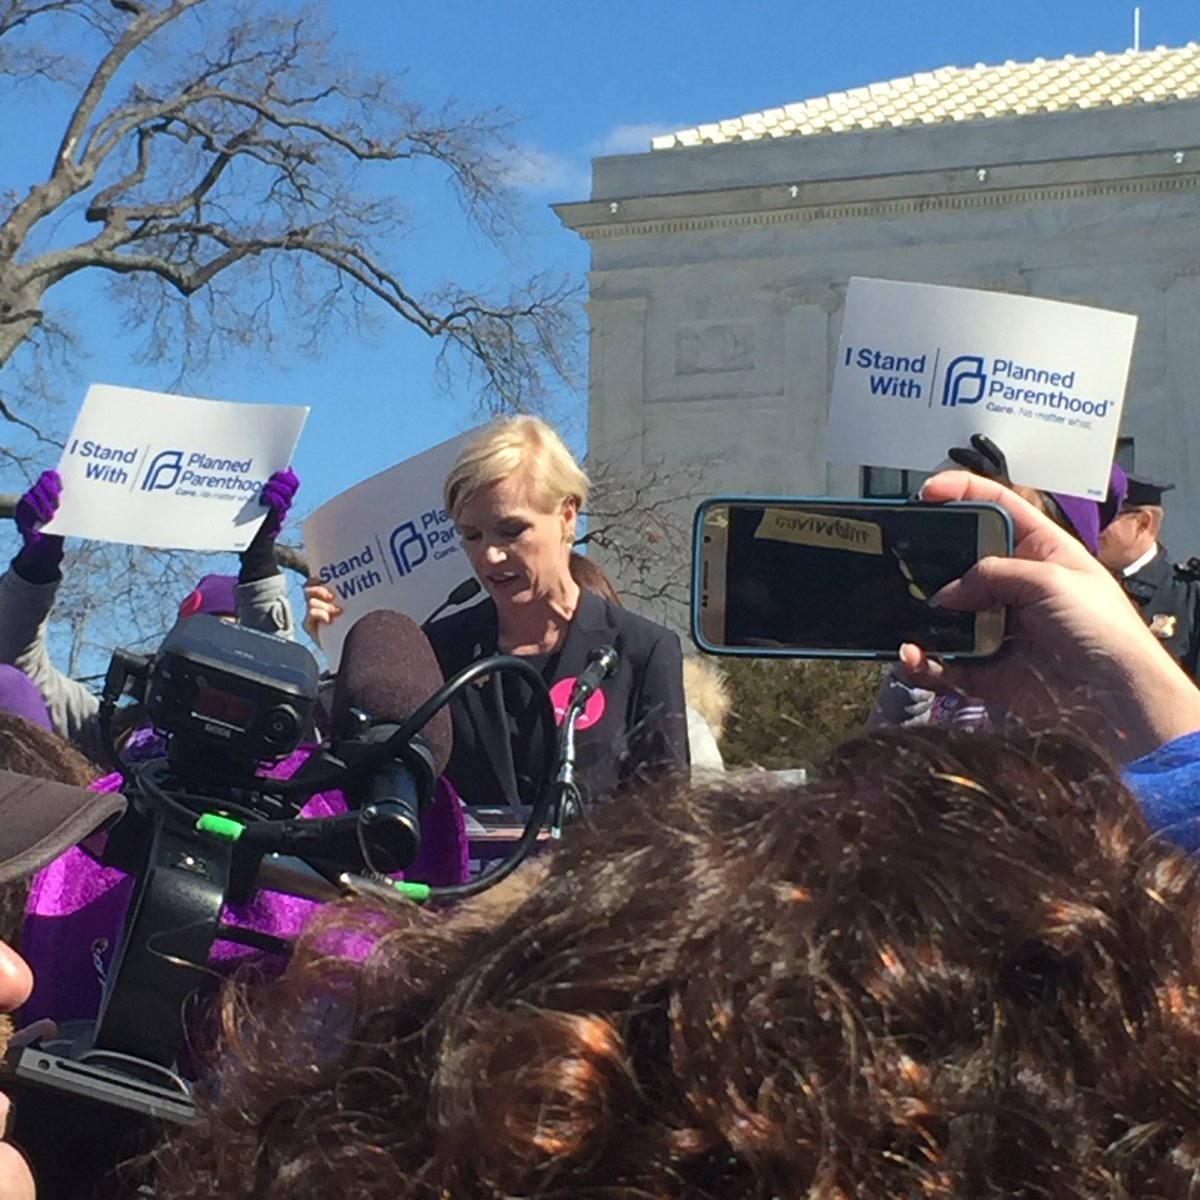 """Not a single woman in this country wants her daughter to have fewer rights than she"" — @CecileRichards #StopTheSham https://t.co/8oMNkbIvrg"